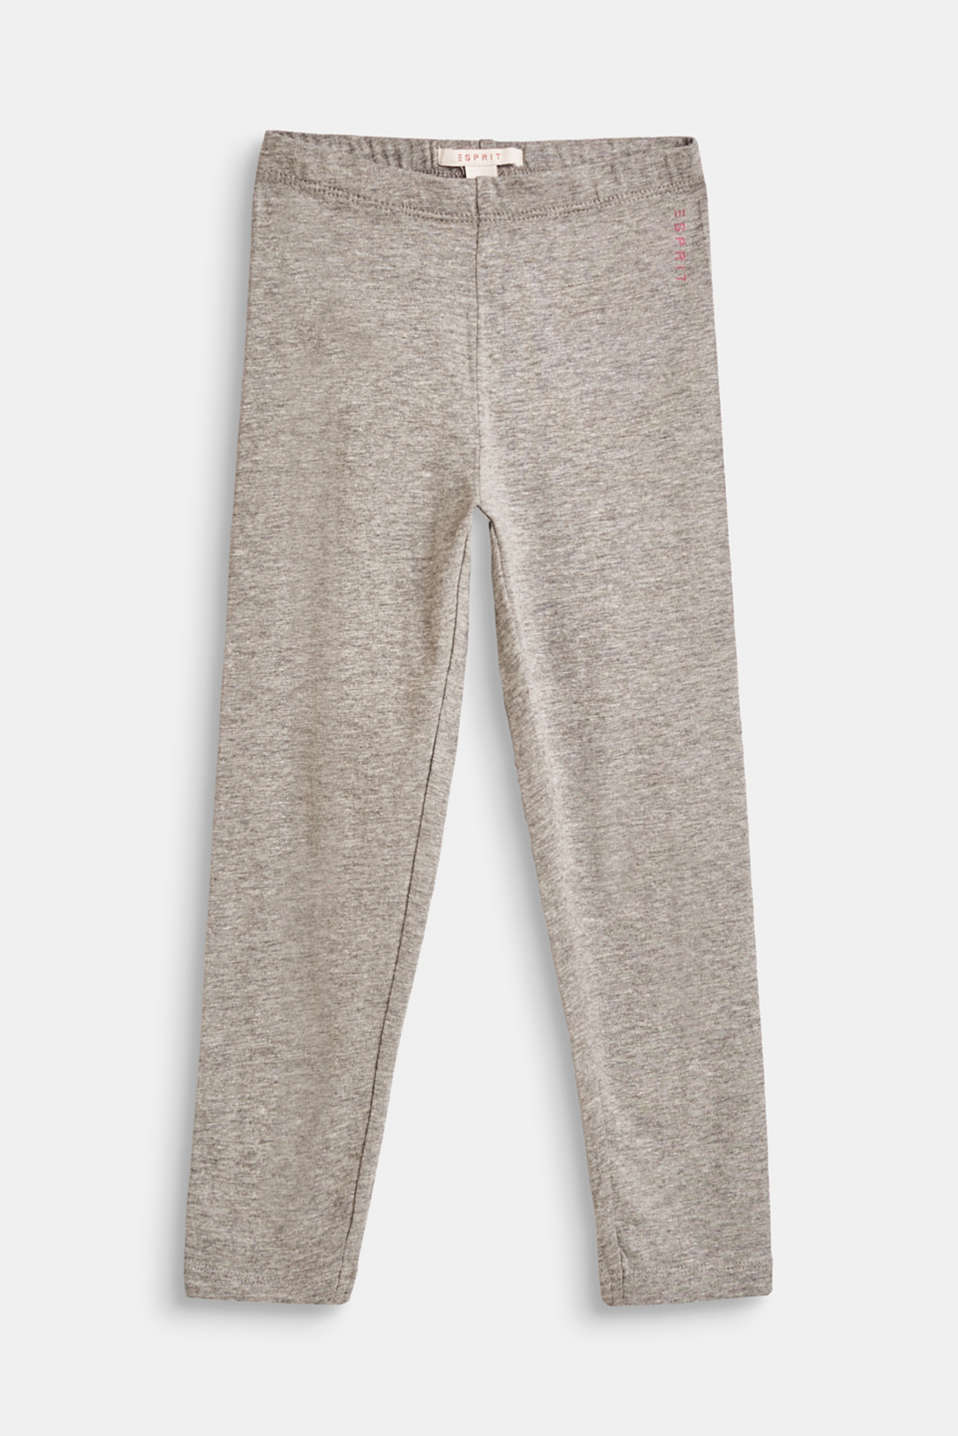 Esprit - Basic leggings neck with stretch for comfort